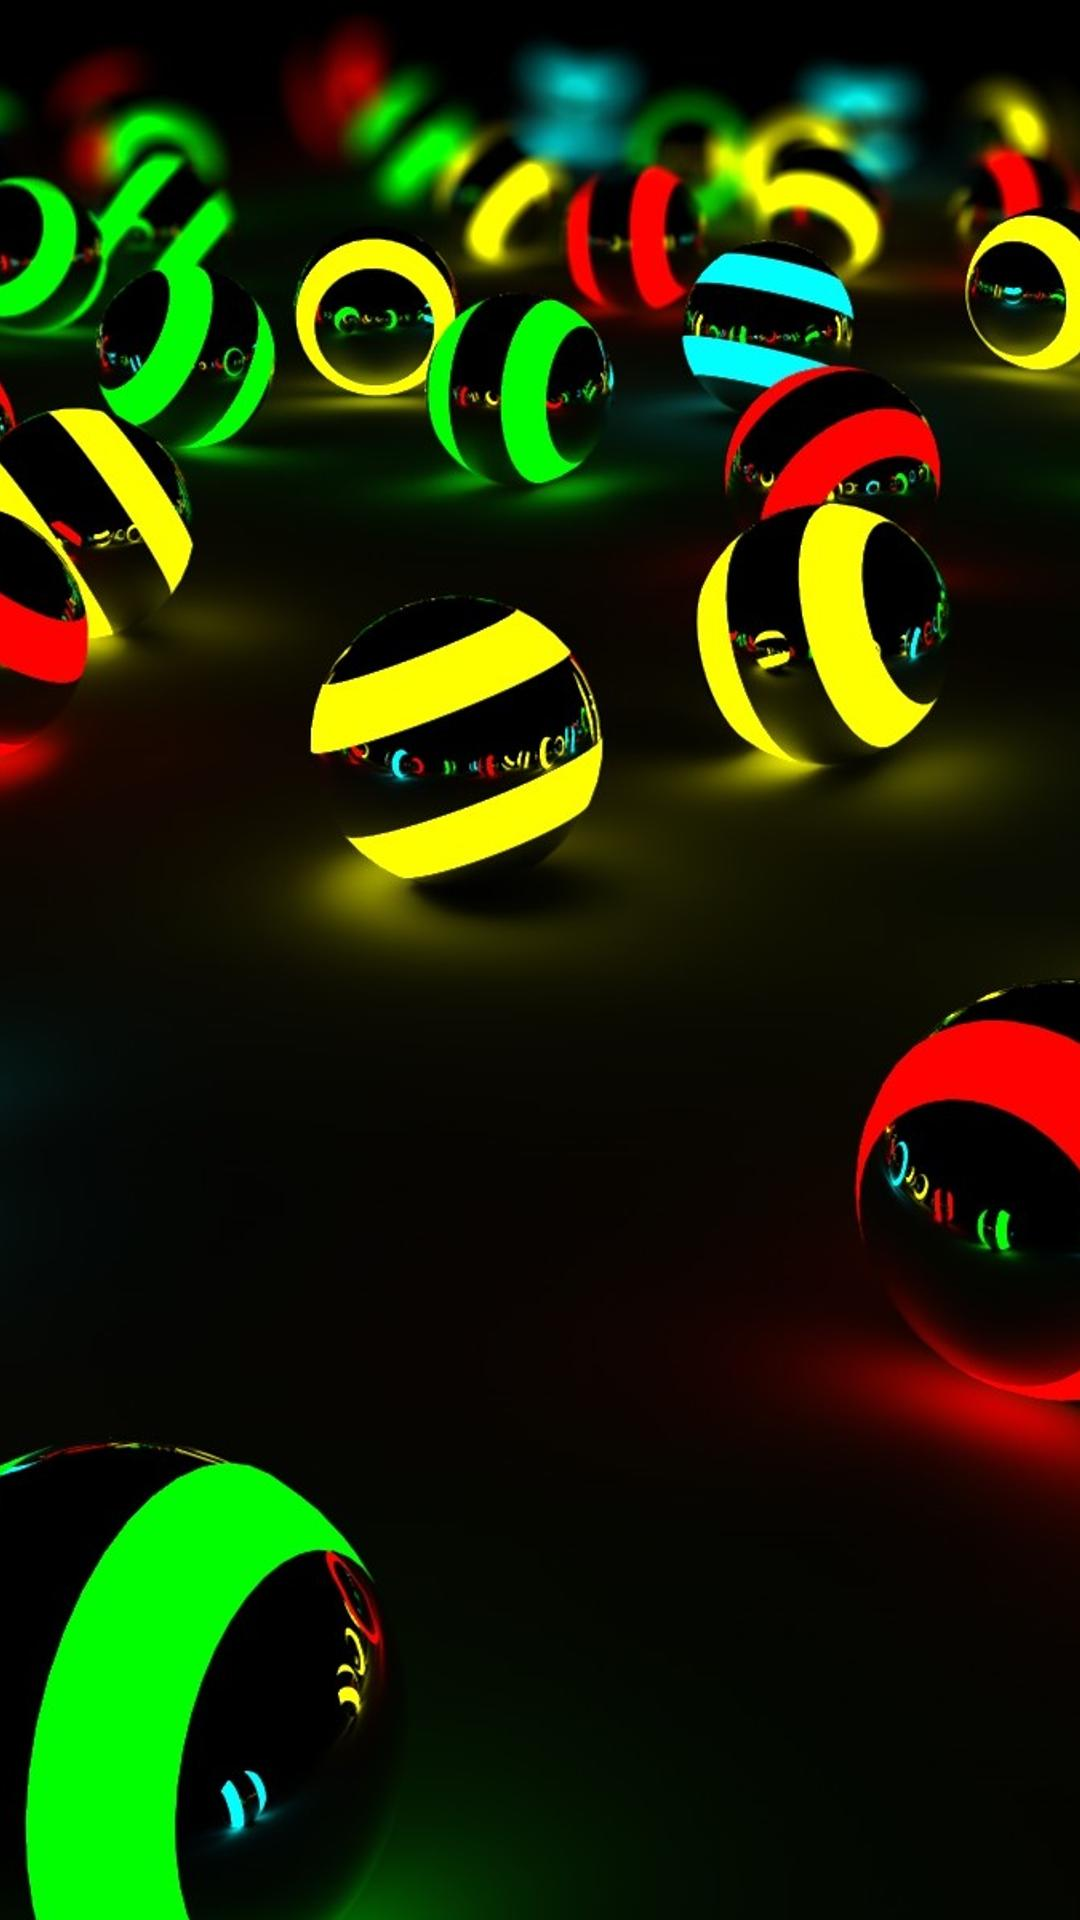 Download Wallpaper 1080x1920 Spheres In Many Color